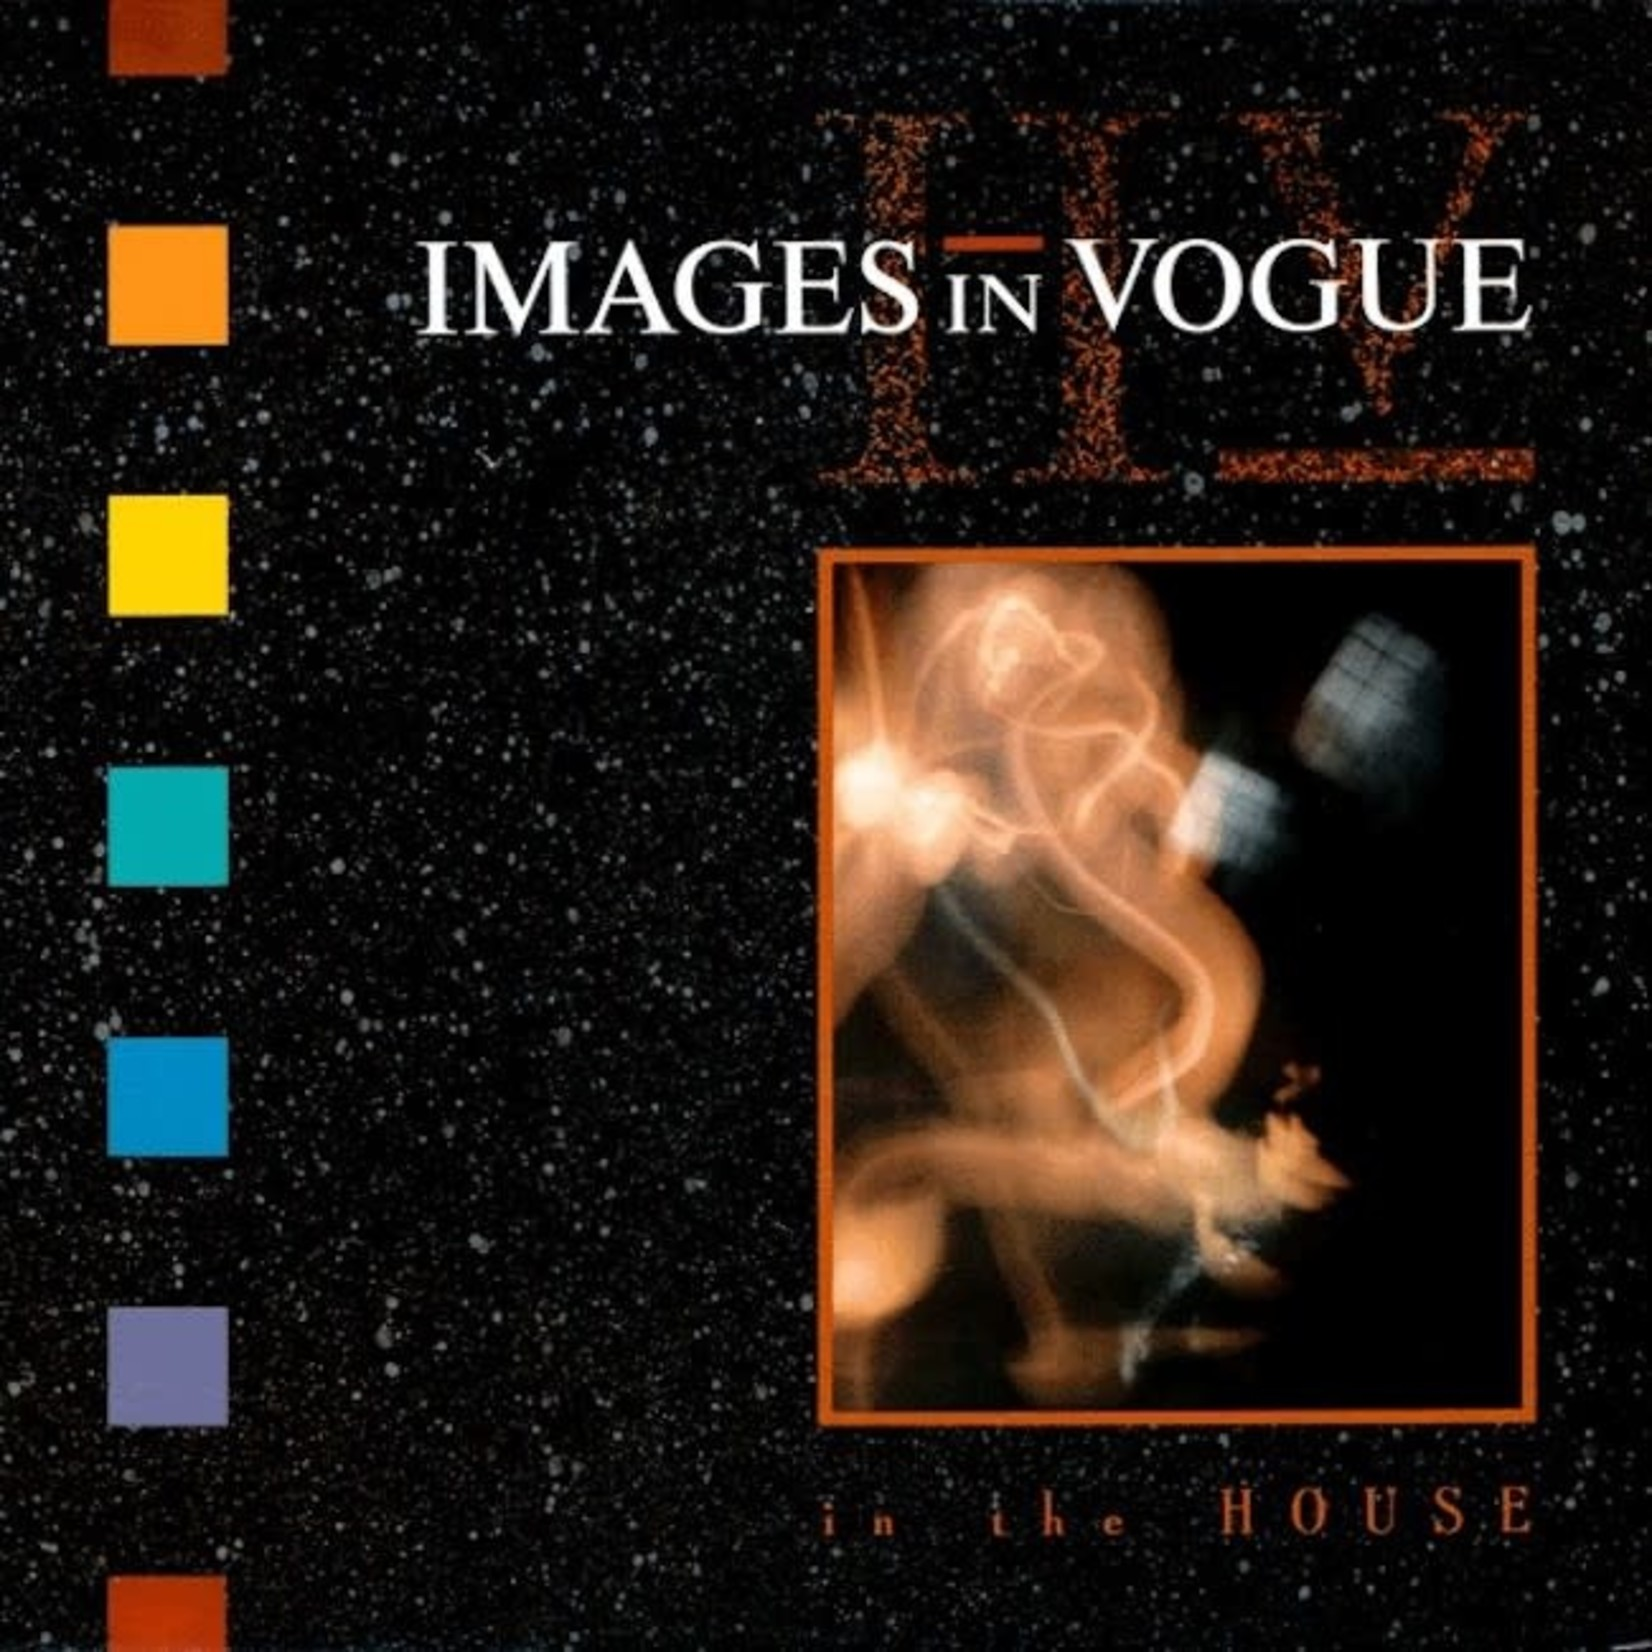 [Vintage] Images in Vogue: In the House